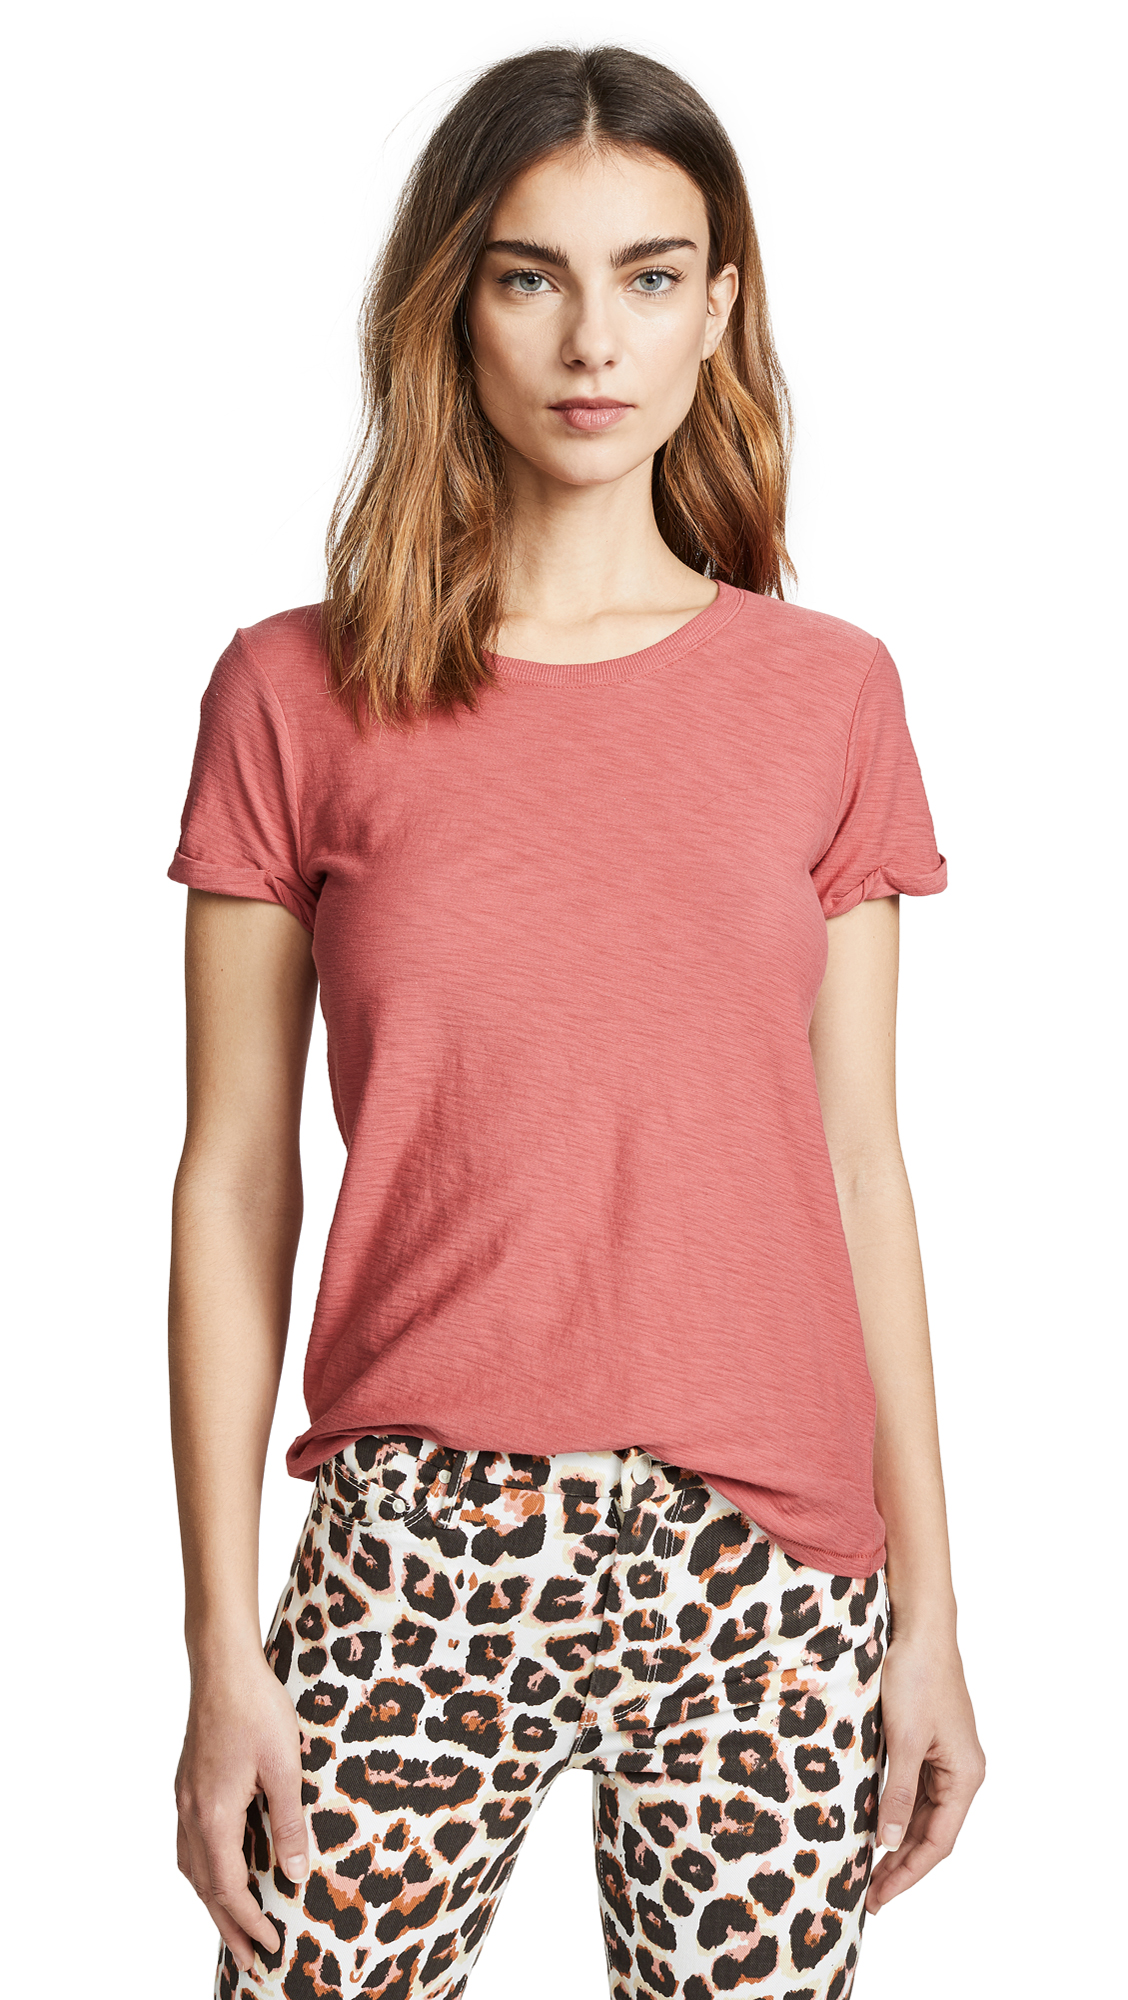 NATION LTD Colette Classic Rolled Crew Tee in Framboise